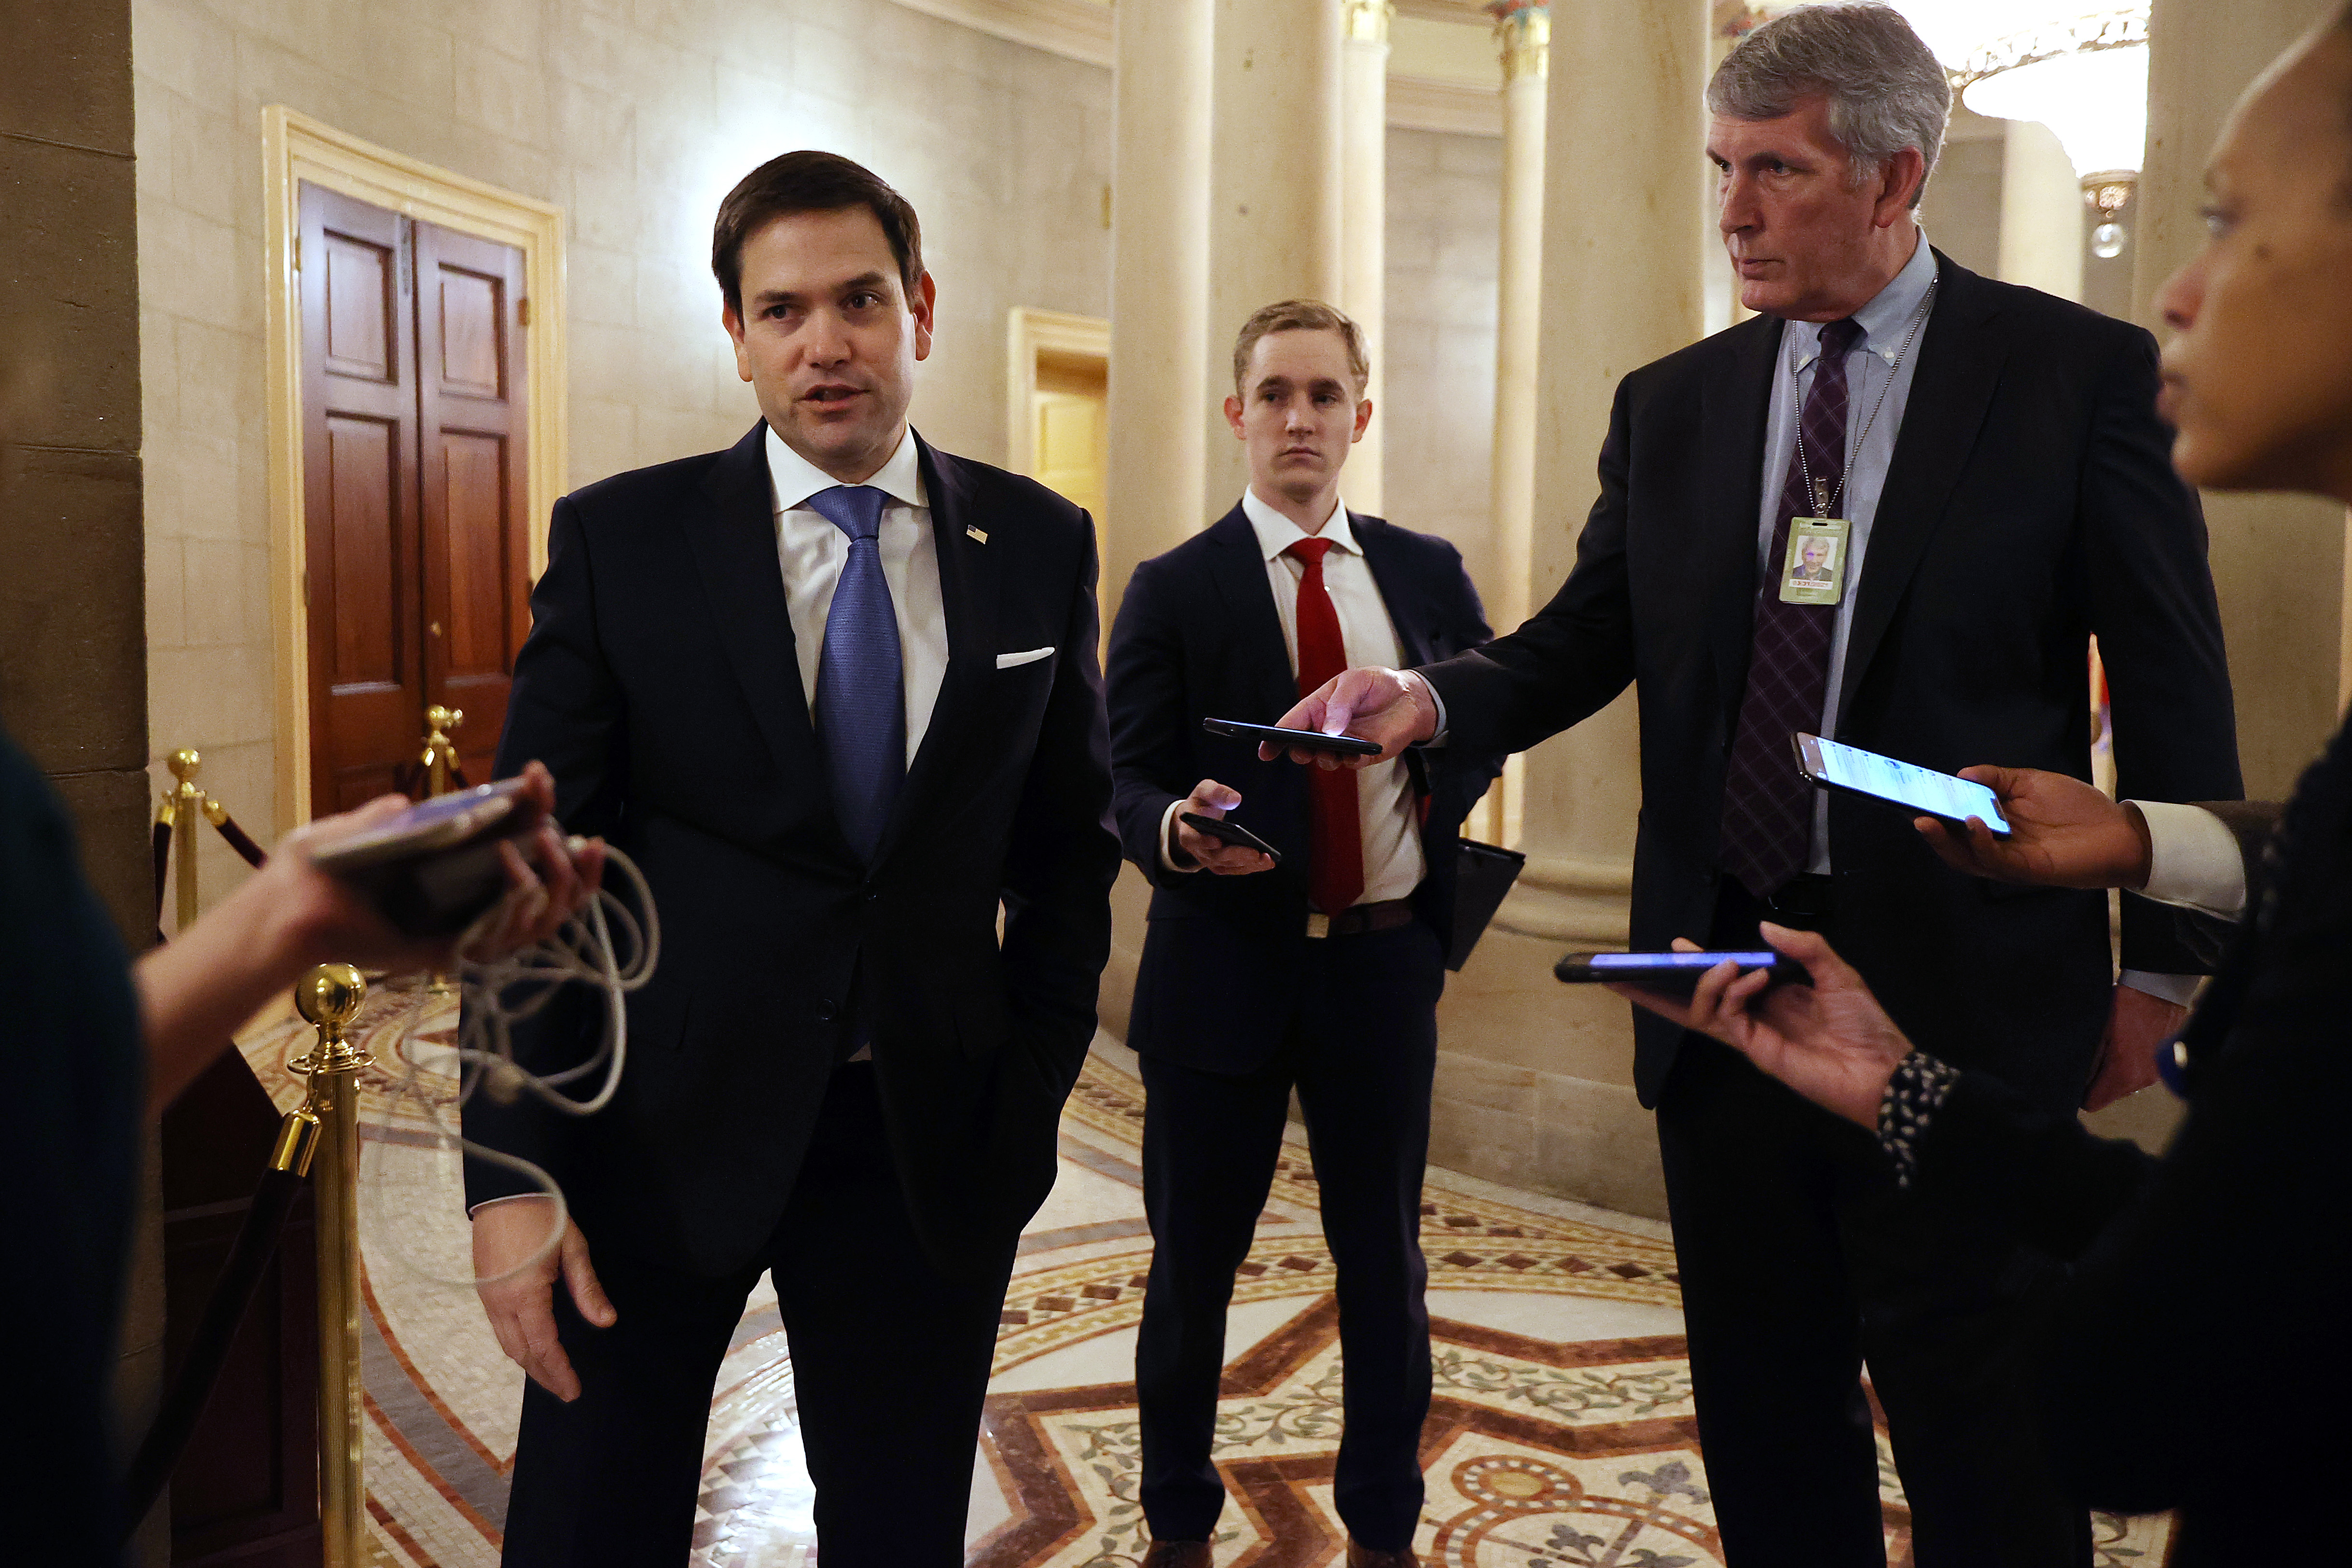 WASHINGTON, DC - MARCH 24:  Sen. Marco Rubio (R-FL) talks to reporters after leaving a meeting with fellow Republican senators and Treasury Secretary Steven Mnuchin as negotiations continue on a $2 trillion economic stimulus in response to the coronavirus pandemic March 24, 2020 in Washington, DC. After days of tense negotiations -- and Democrats twice blocking the nearly $2 trillion package -- the Senate and Treasury Department appear to have reached important compromises on legislation to shore up the economy during the COVID-19 pandemic. (Photo by Chip Somodevilla/Getty Images)